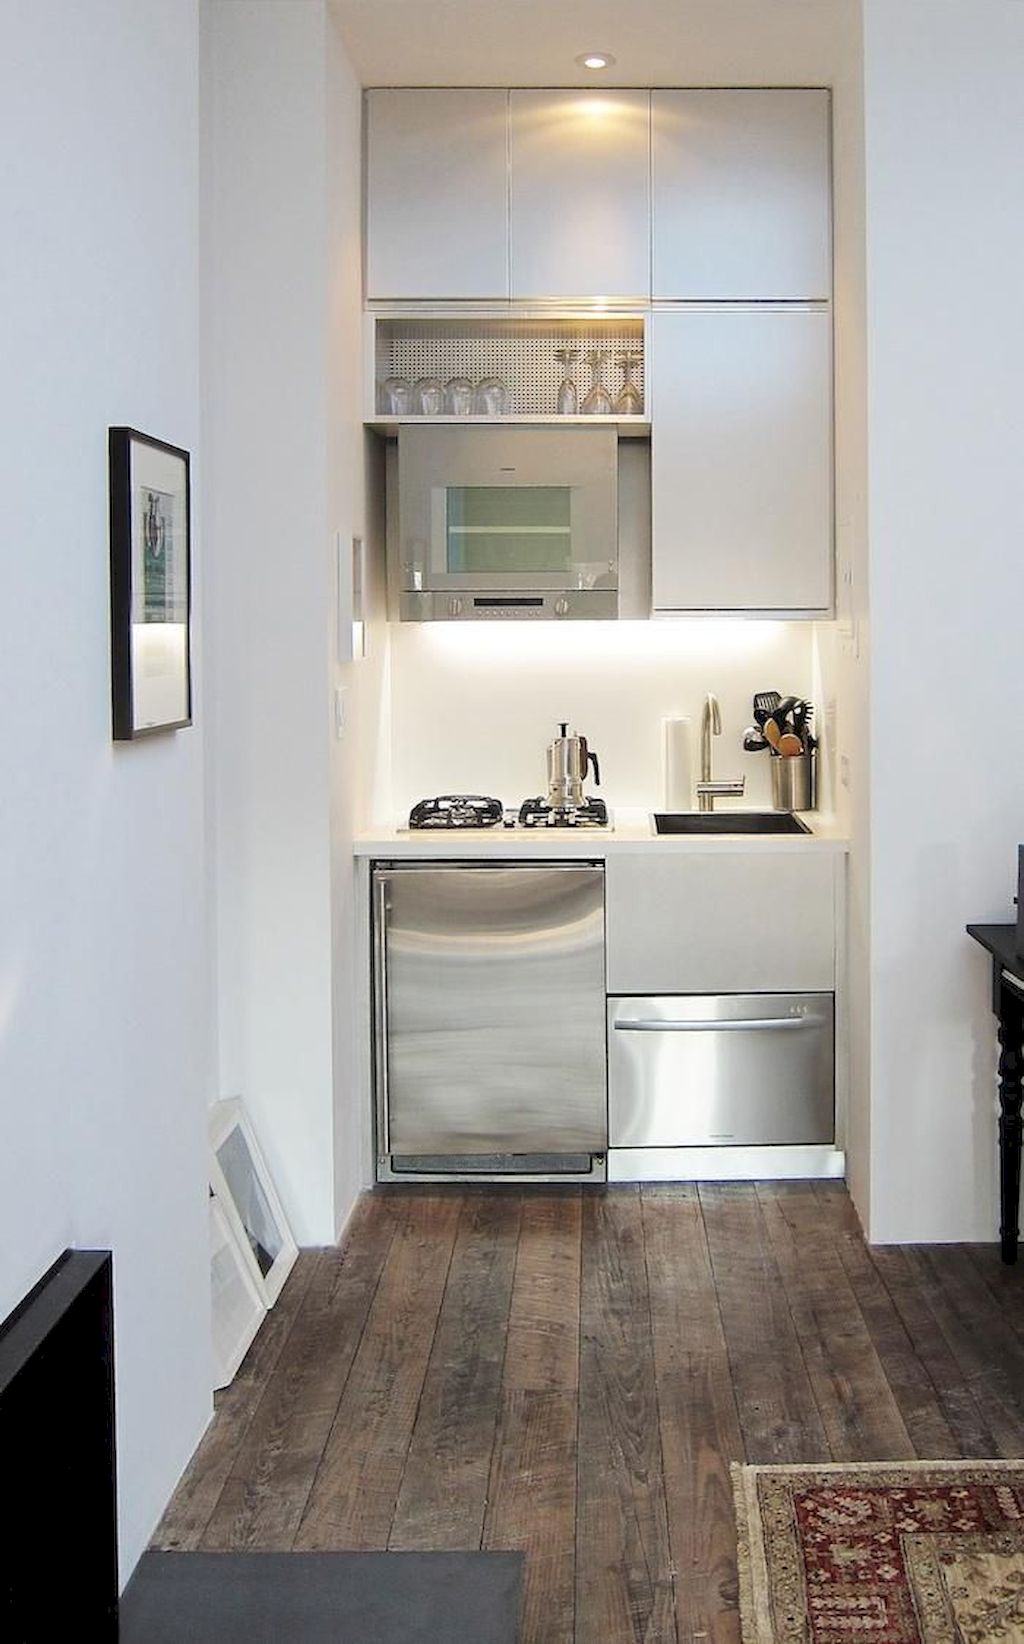 Kitchen Plan And Design For Small Room (82)